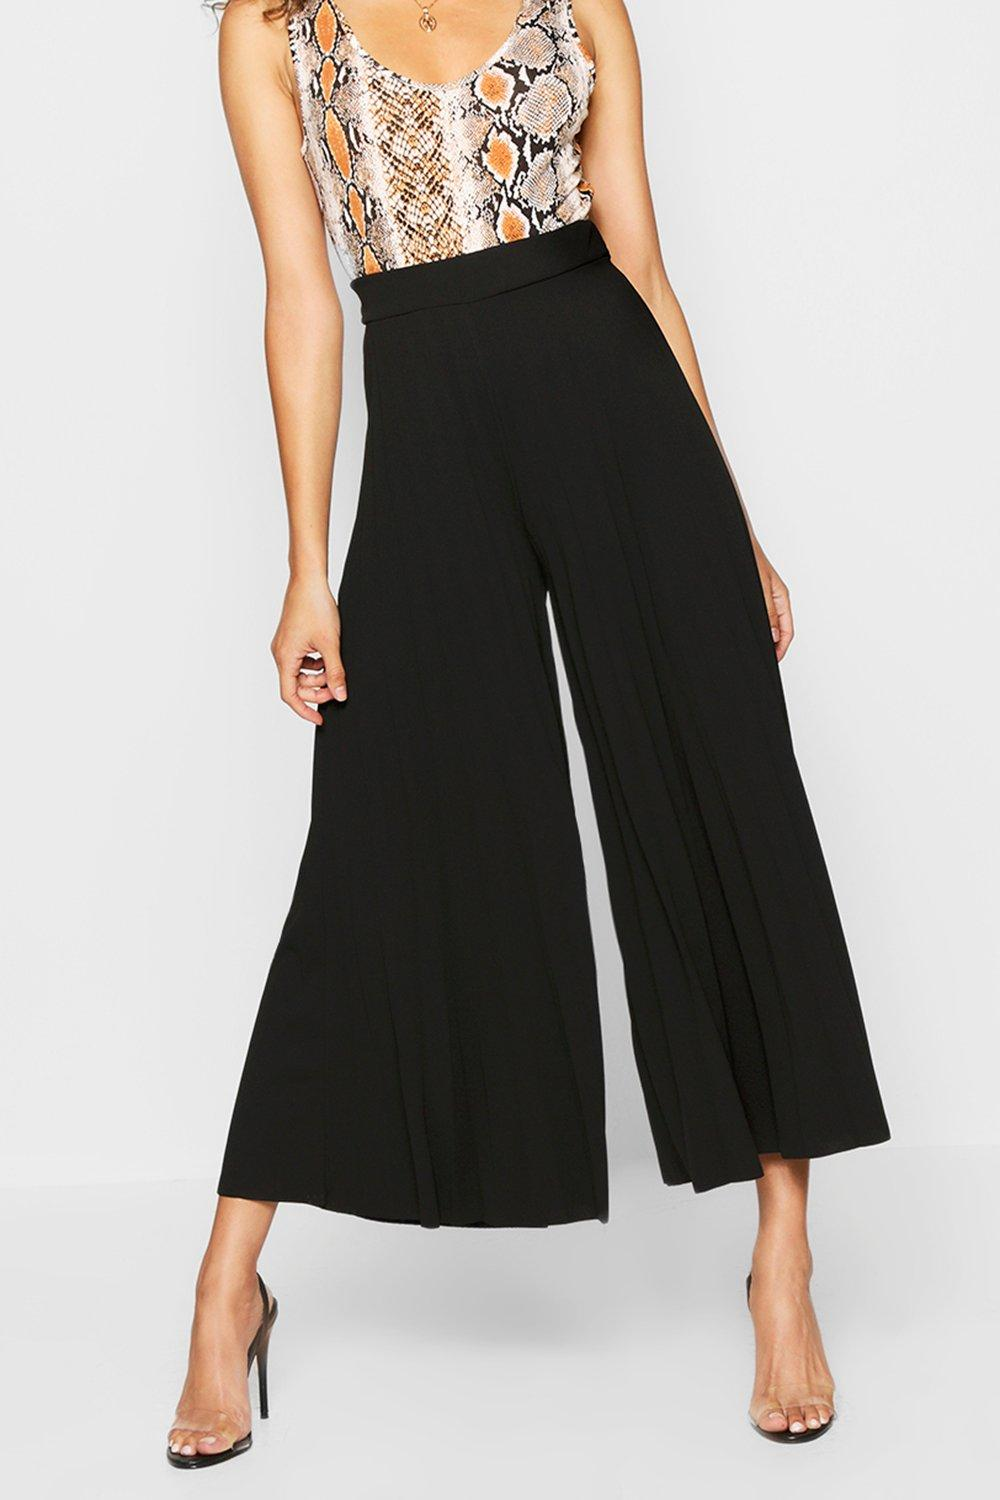 Culotte Pleated black Trouser Pleated Culotte HqTawxqpOn